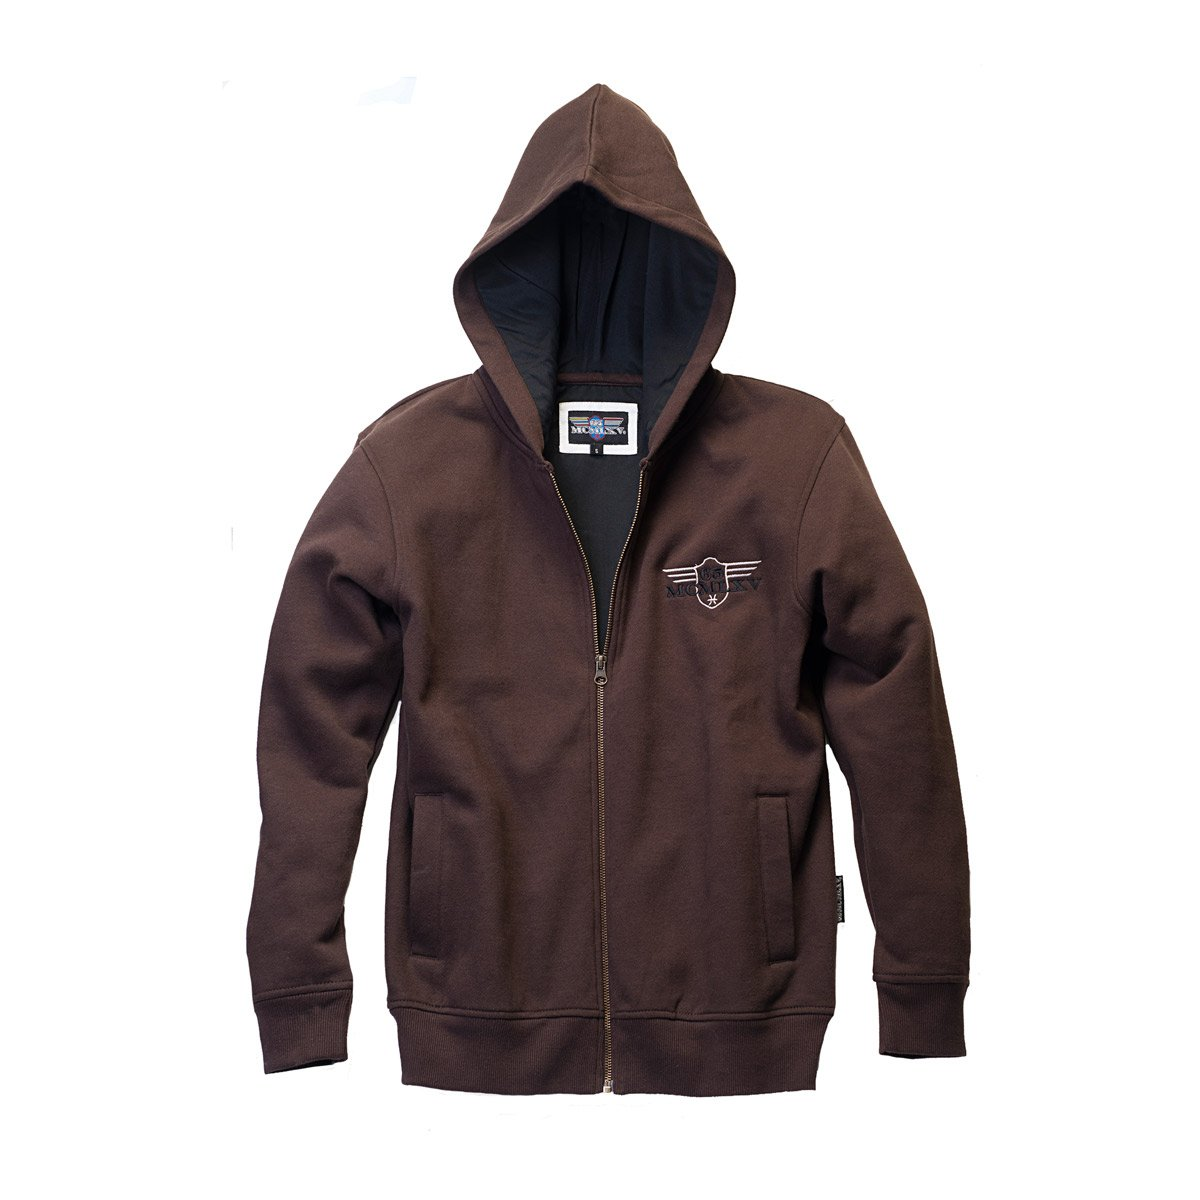 Men's Fleece Hoodie in Coffee